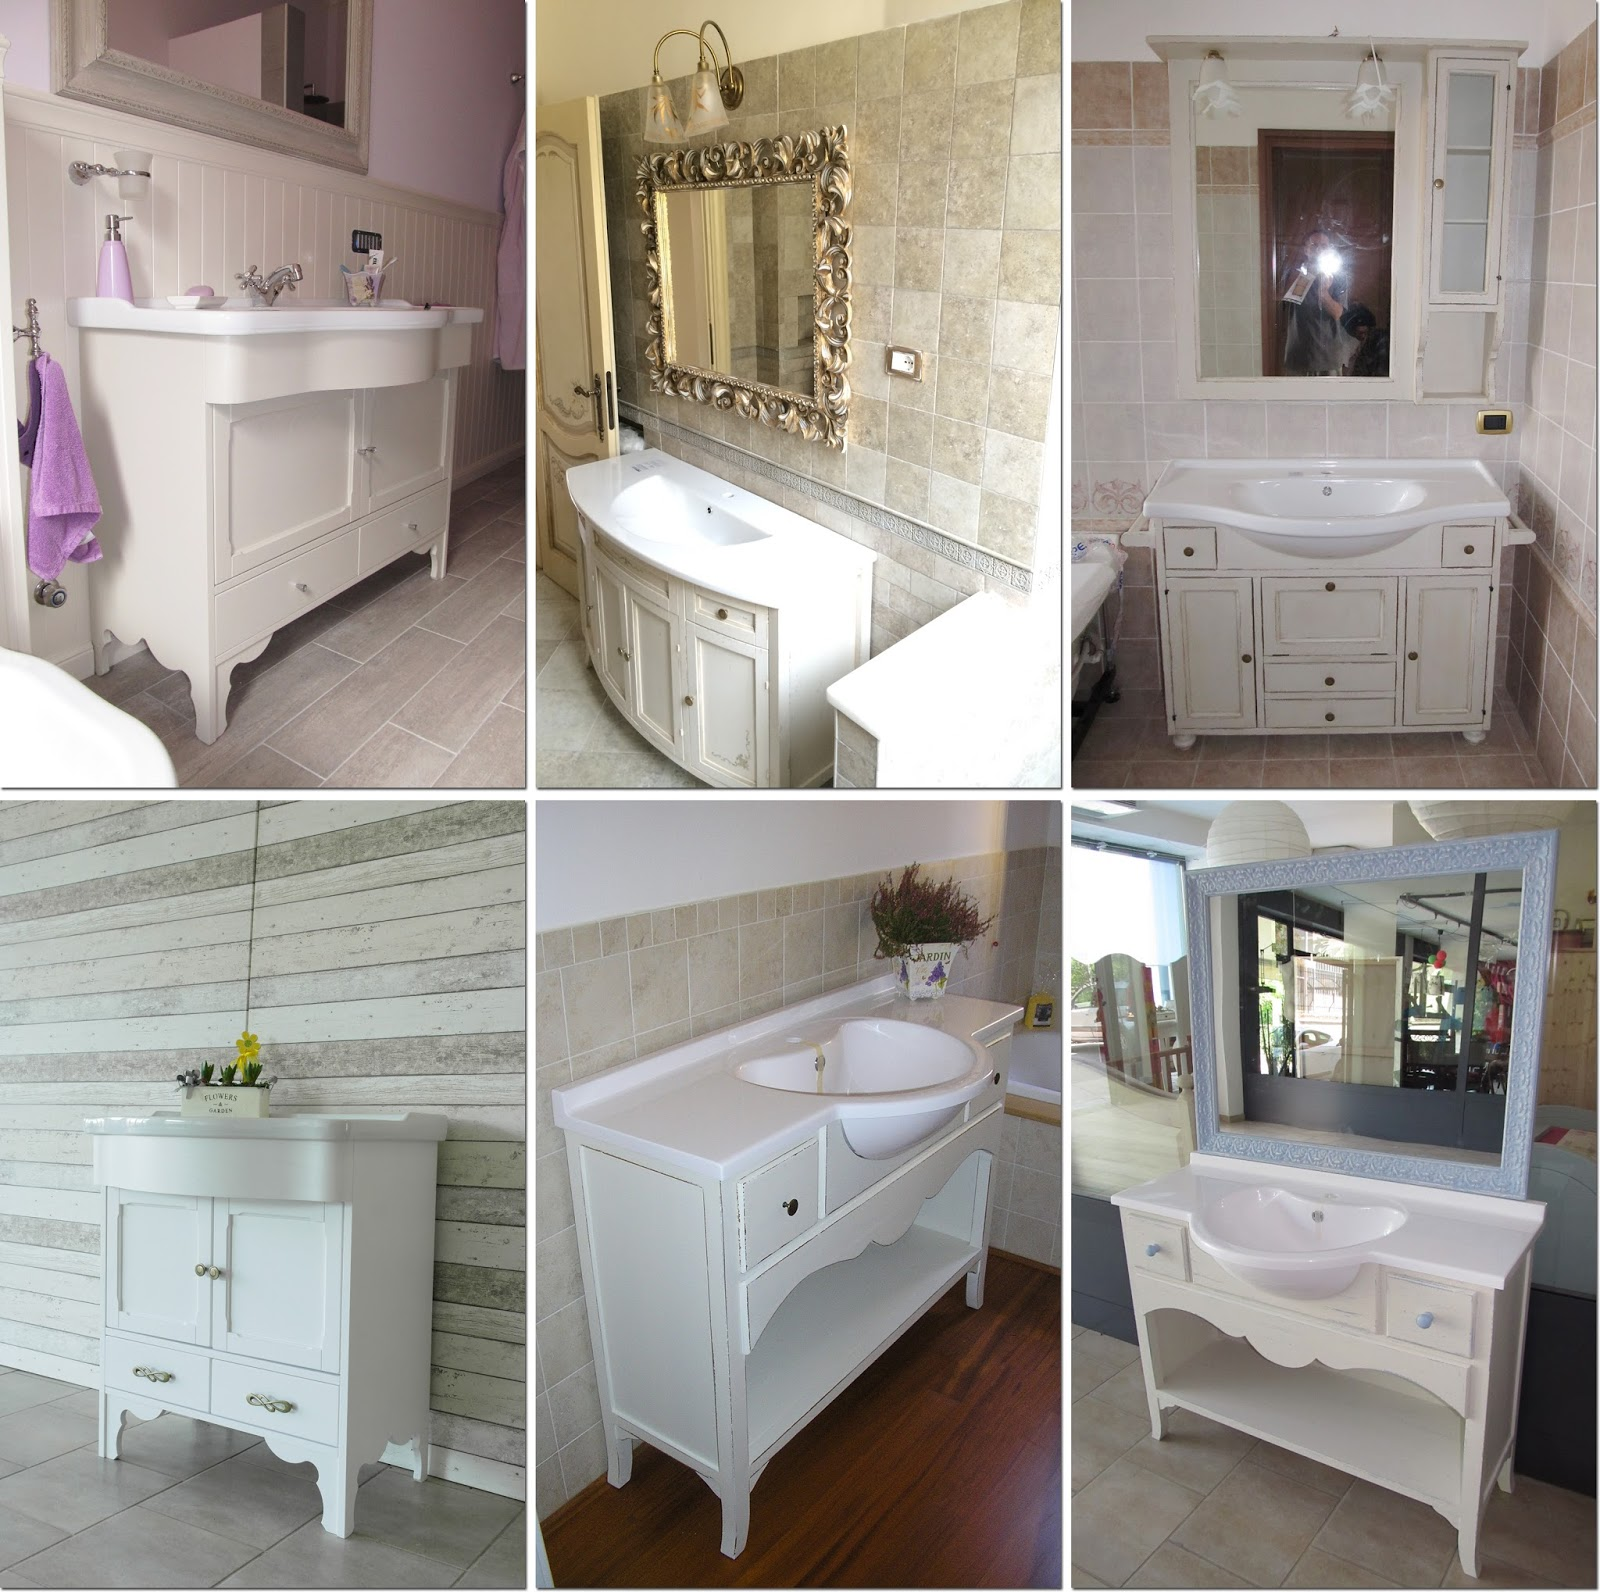 Un mobile lavabo, mille decorazioni   shabby chic interiors